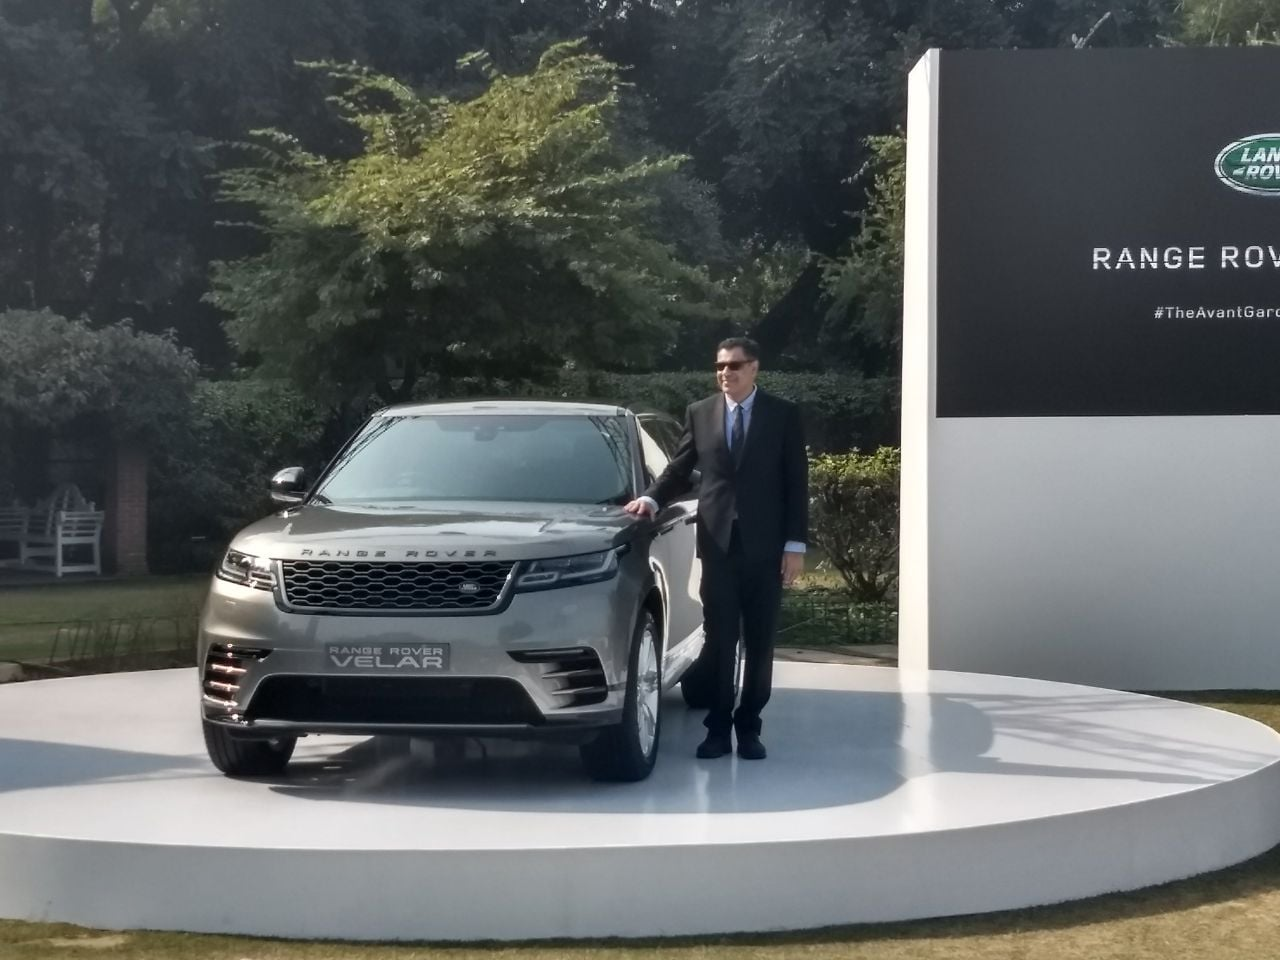 The newly launched Range Rover Velar sits between the Evoque and the Range Rover Sport